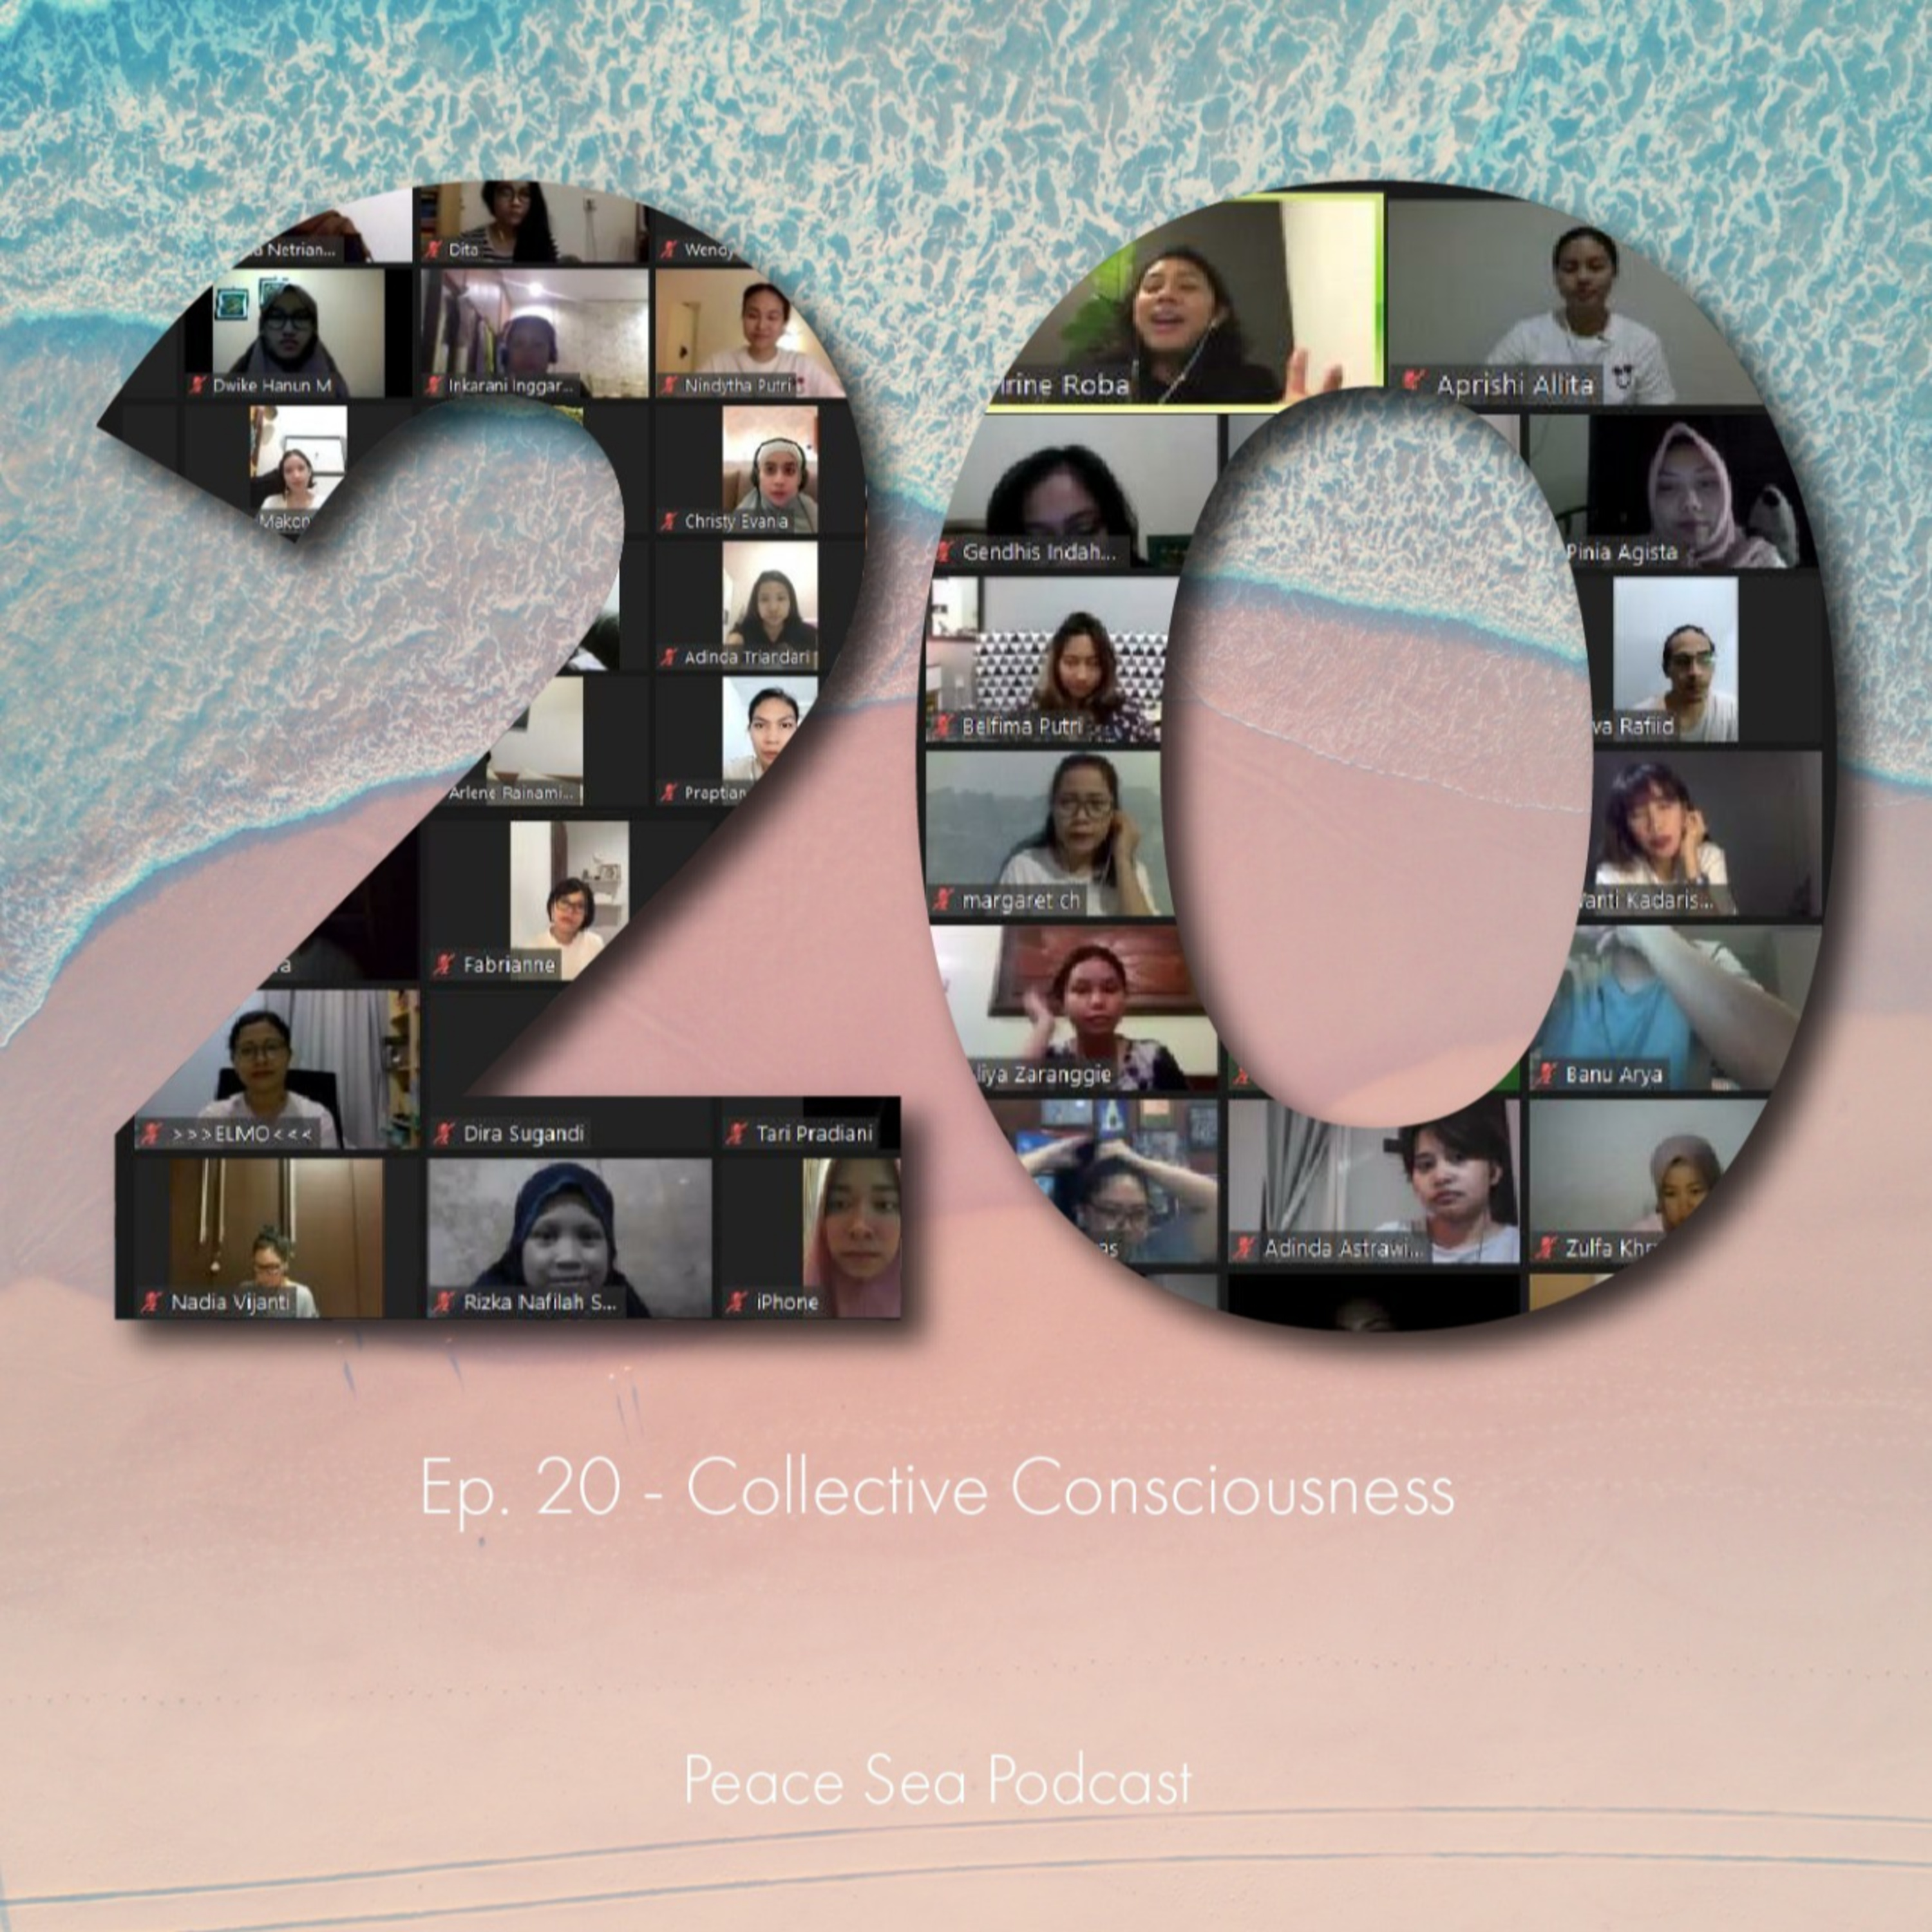 Ep. 20. Collective Consciousness